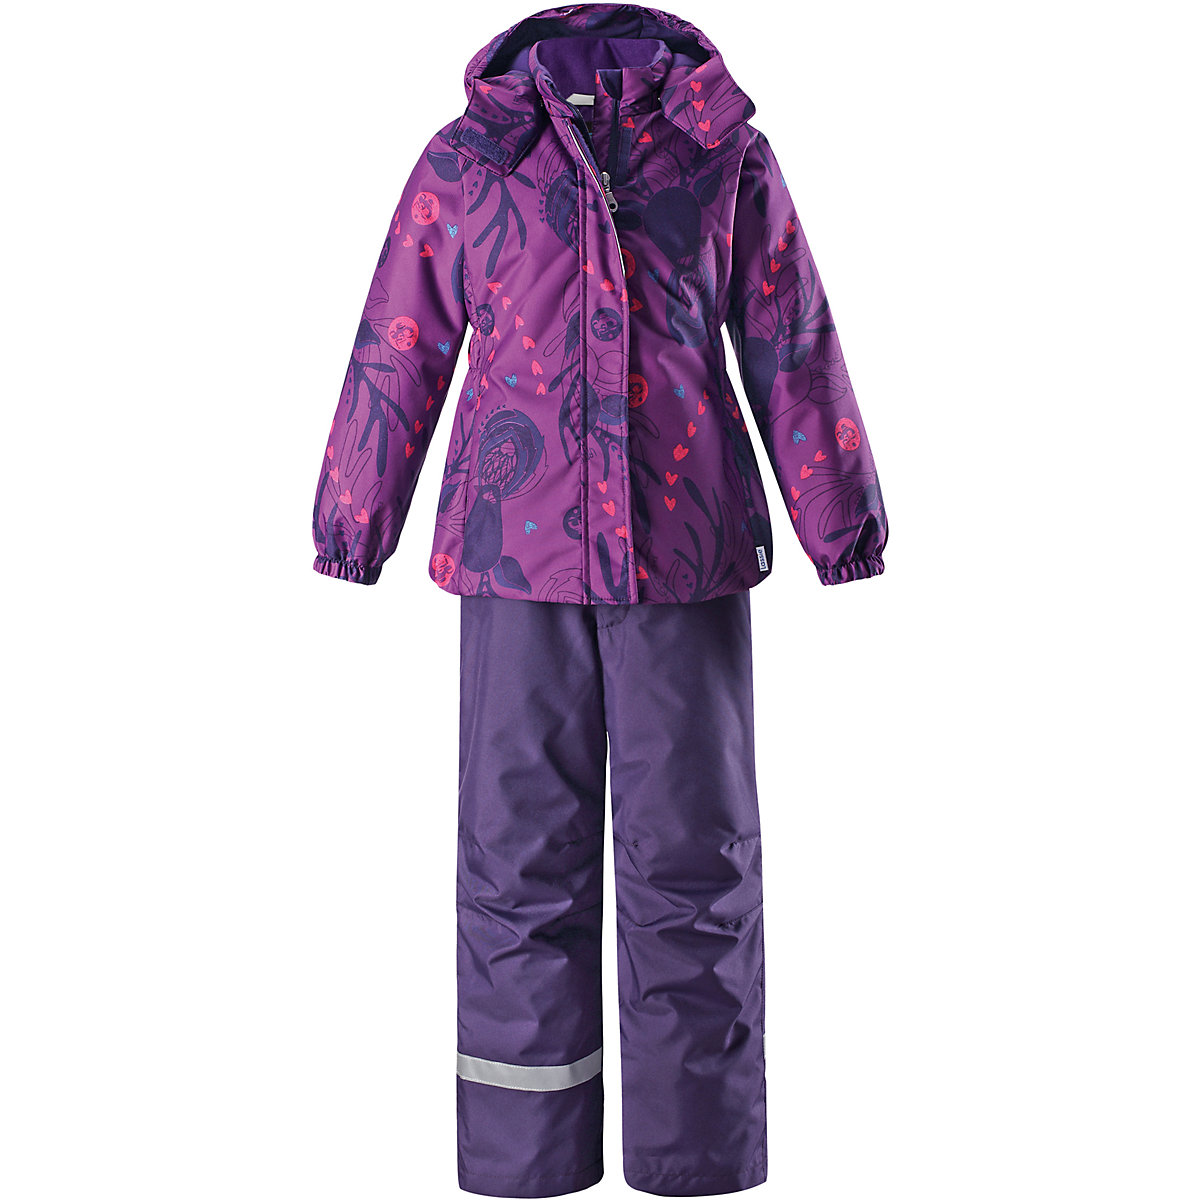 Children's Sets LASSIE for girls 8628964 Winter Track Suit Kids Children clothes Warm children s sets lassie for girls 8631960 winter track suit kids children clothes warm